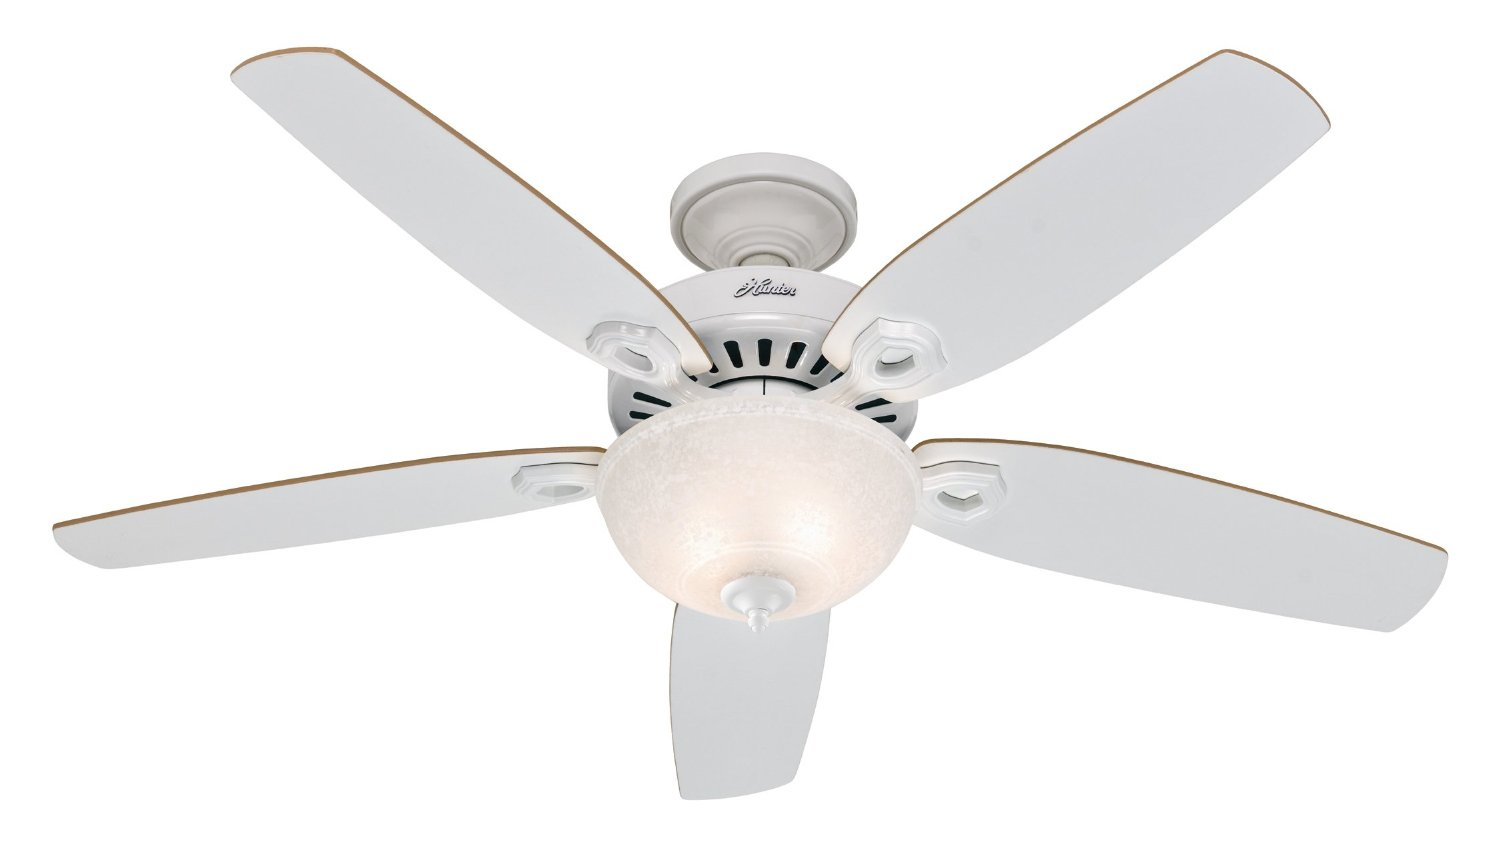 Ceiling fantastic casablanca ceiling fans for more wonderful cute casablanca ceiling fans in white and five blade slinger with single light for ceiling decor aloadofball Choice Image